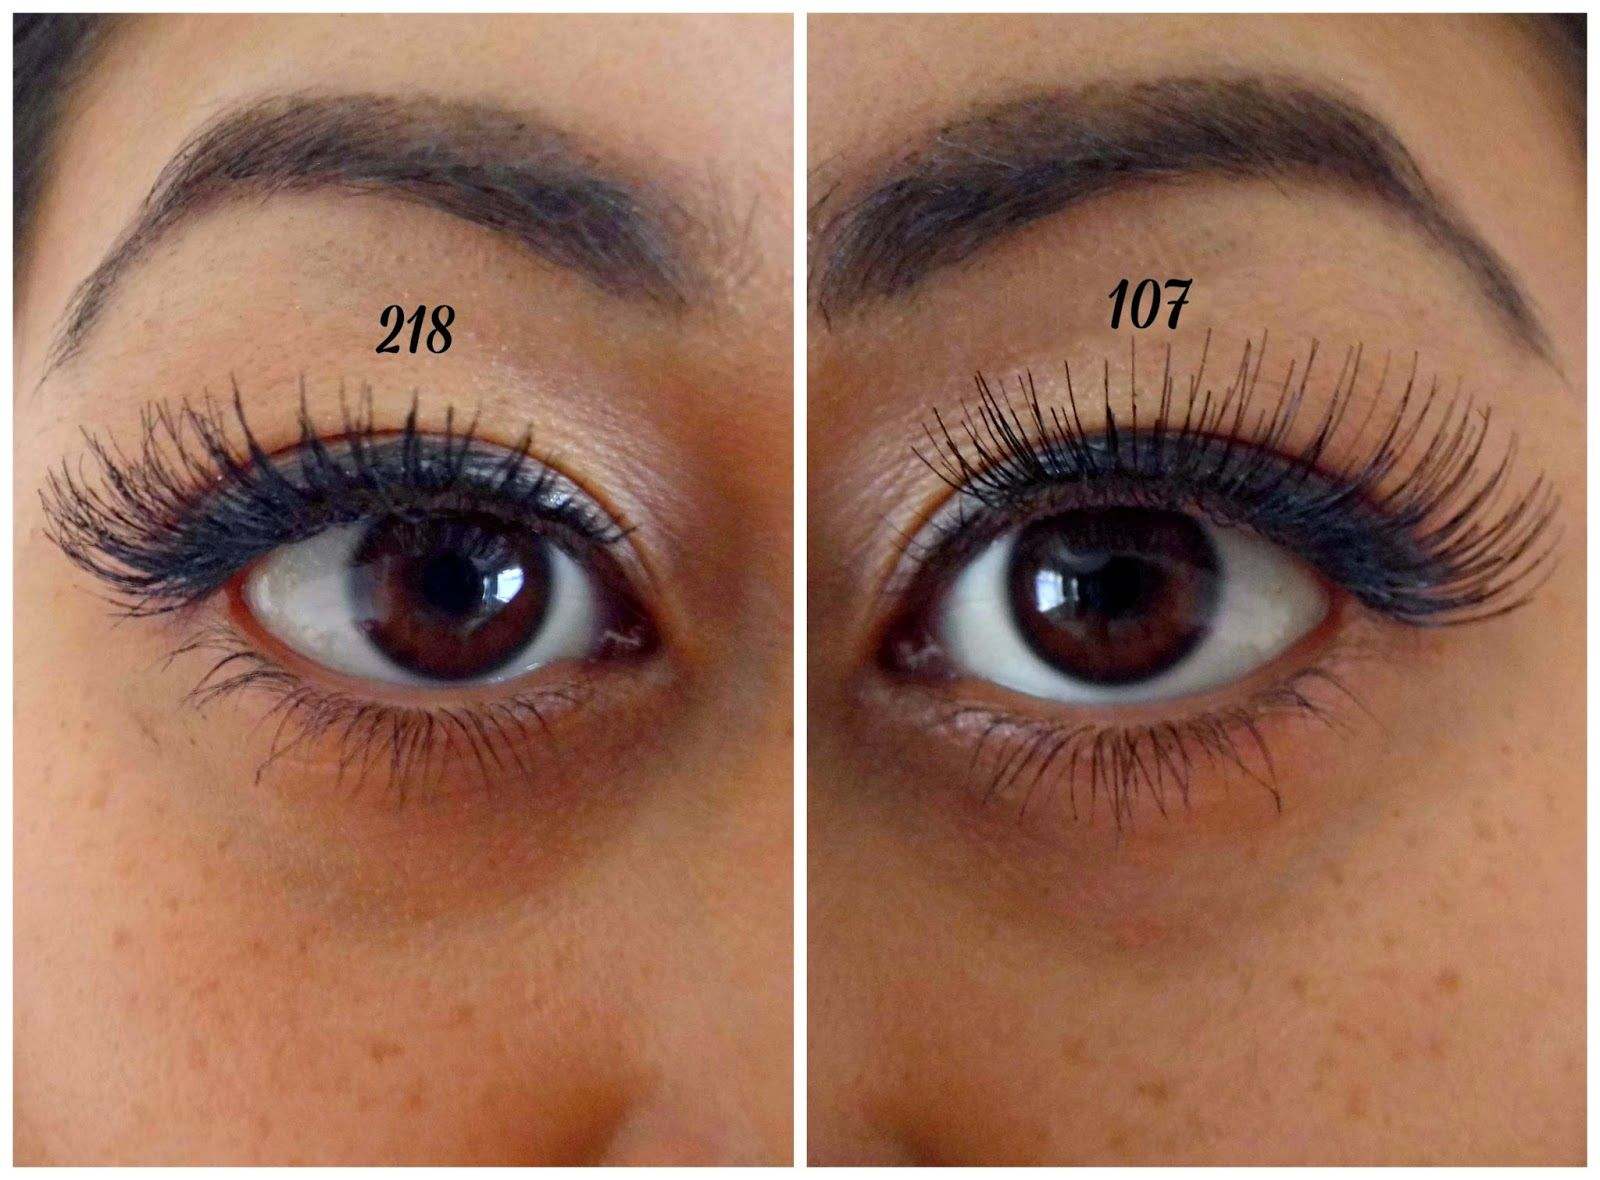 Red Cherry Lashes In 107 And 218 Beauty Pinterest Lashes Red